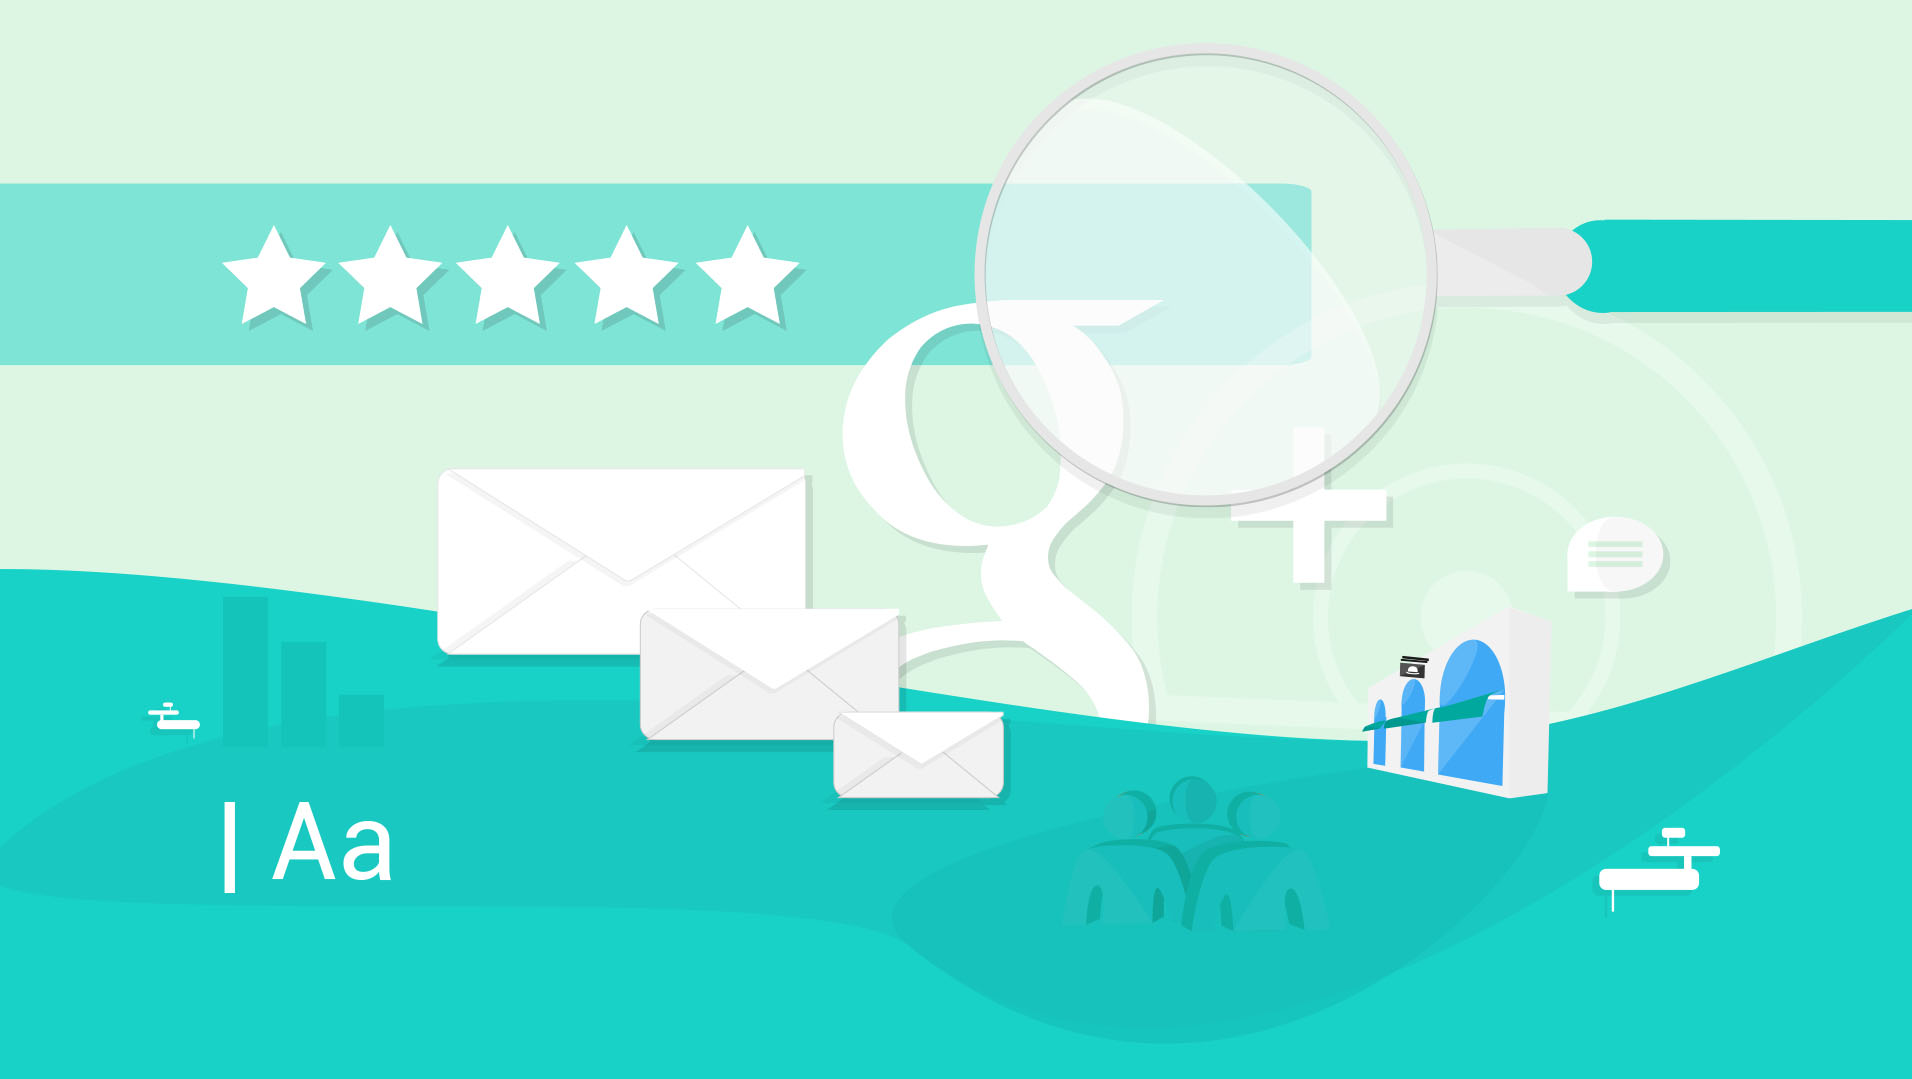 How to Write an Email Asking for a Google Review | Bowler Hat